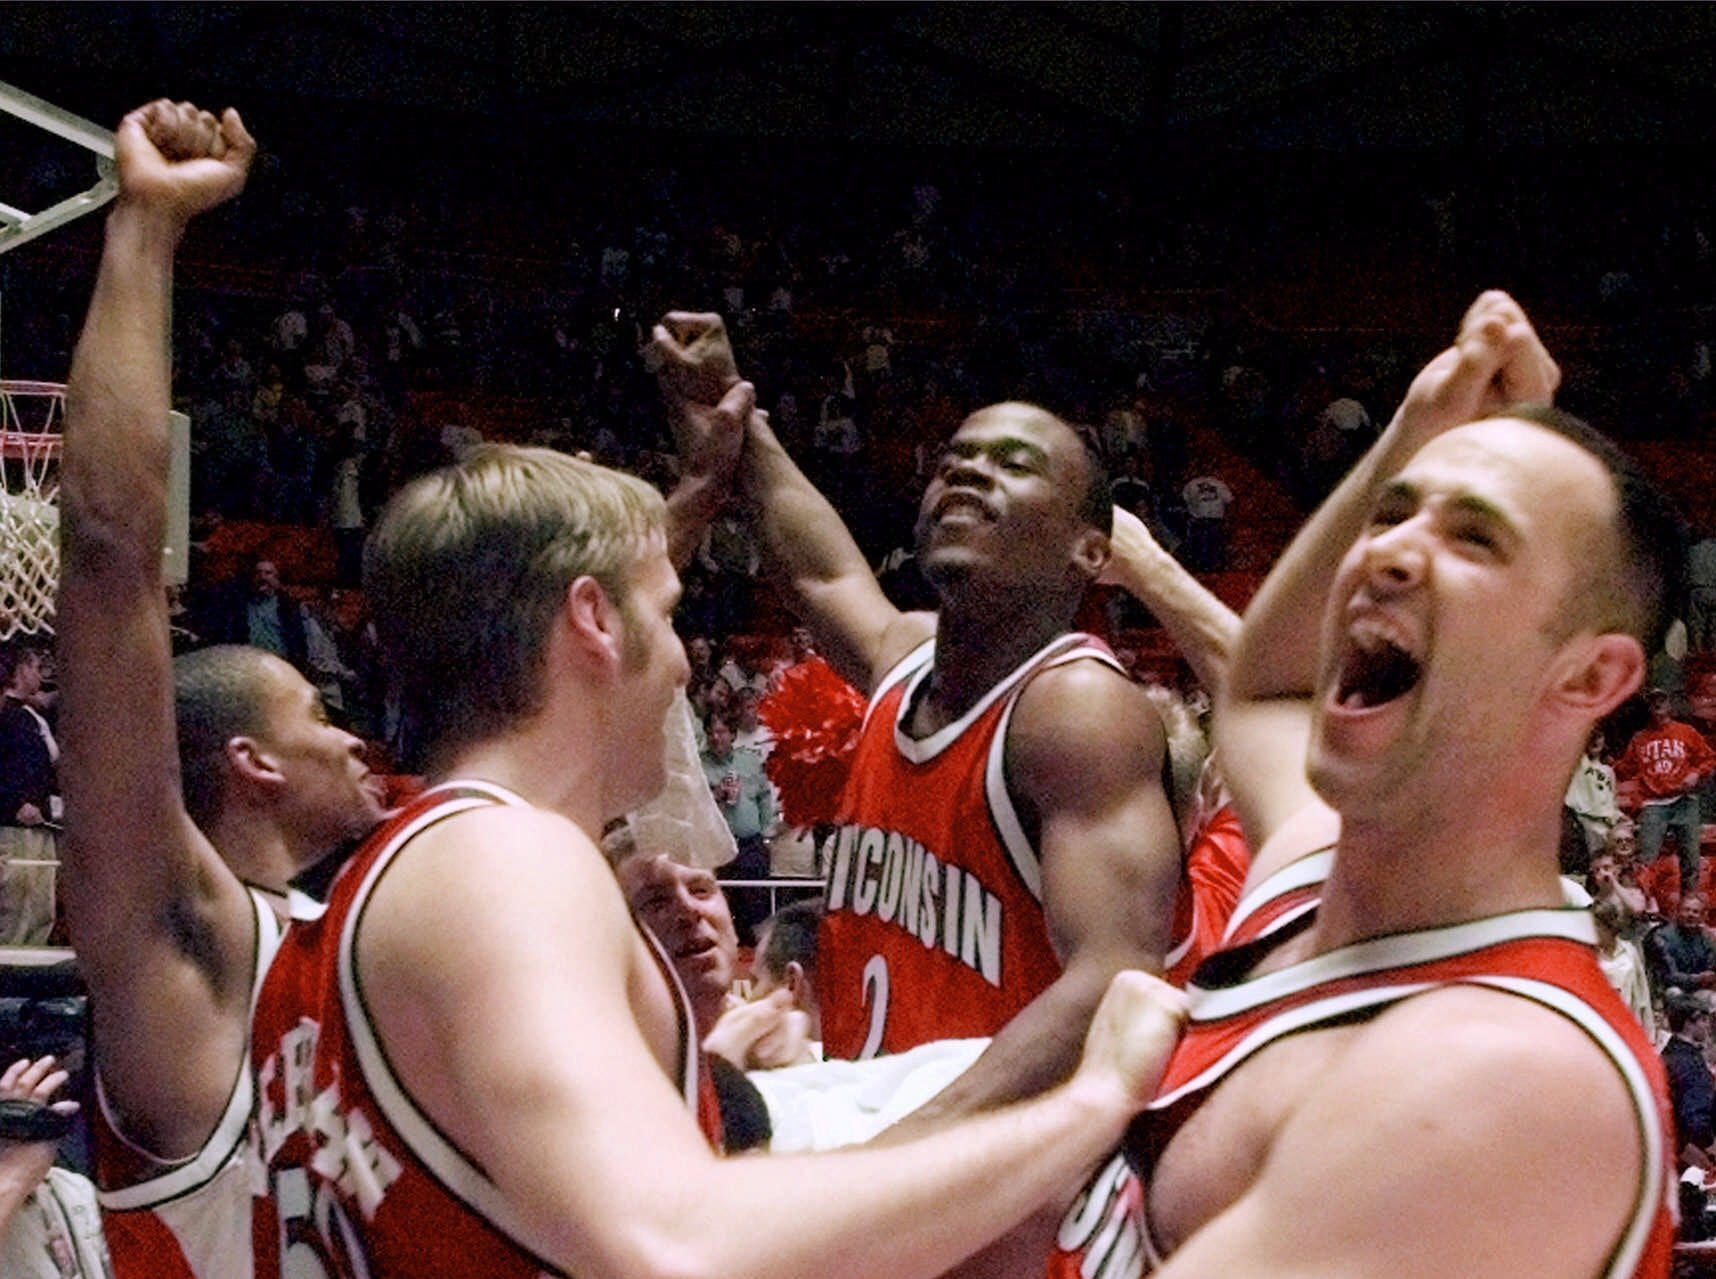 Wisconsin players Mark Vershaw (50) and Charlie Wills, right, grab each other's jersey as the team celebrates its 66-59 upset win over Arizona during the second round of the NCAA West Regionals in Salt Lake City on Saturday, March 18, 2000.